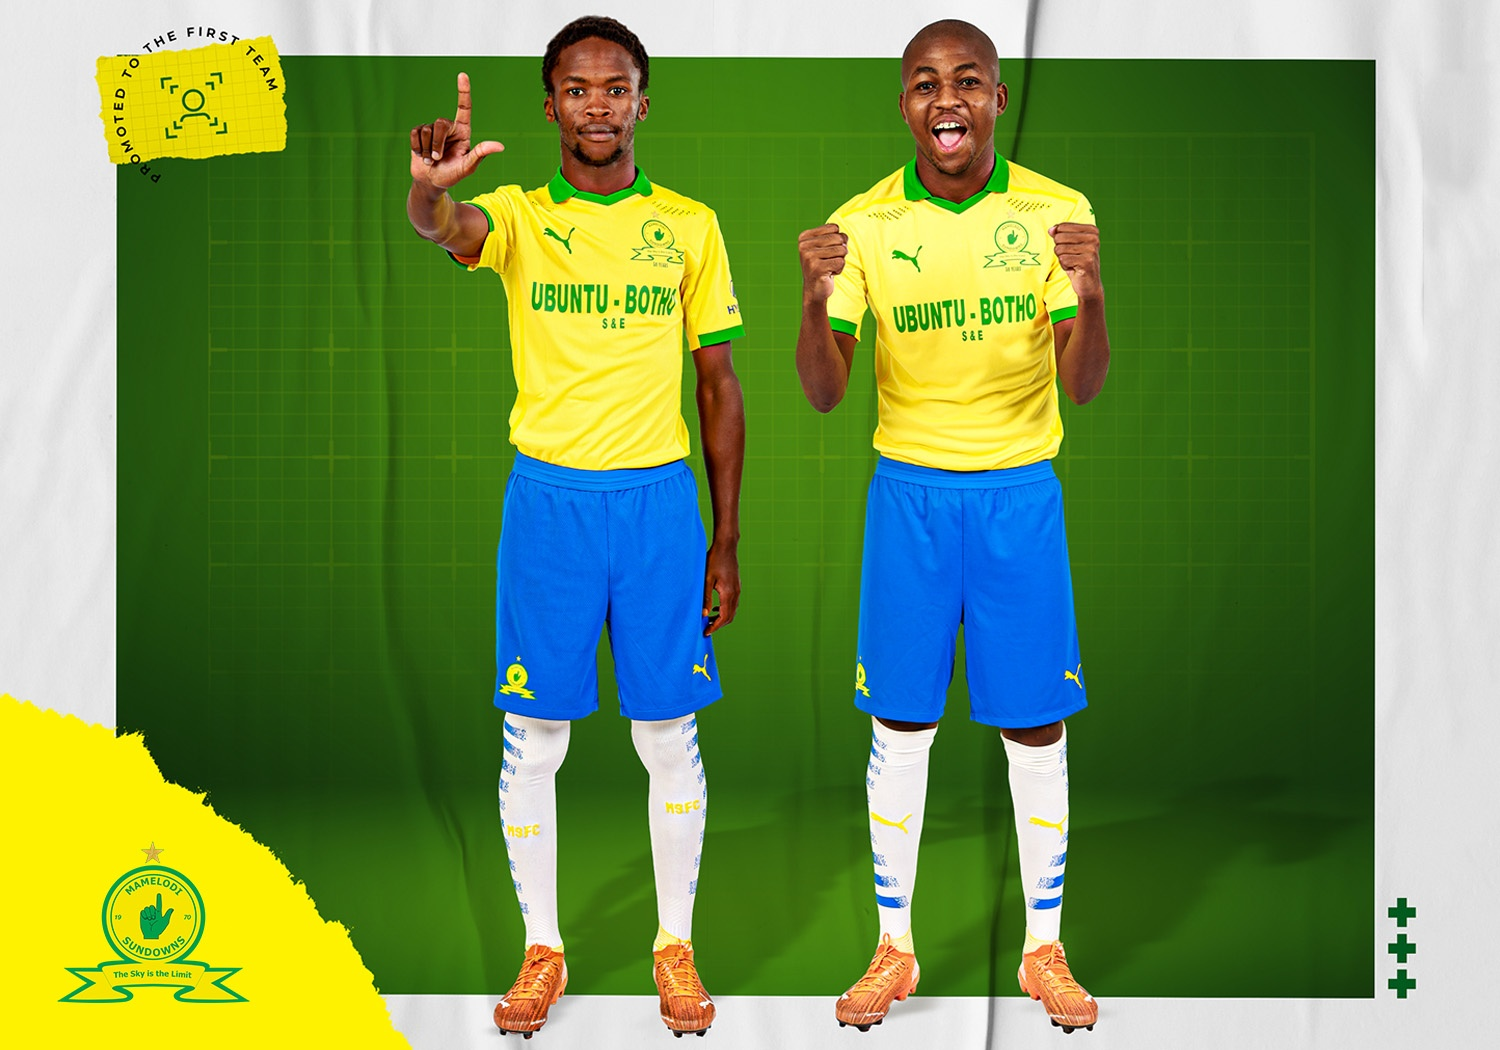 Mkhize and Mdhluli sign first-team contracts